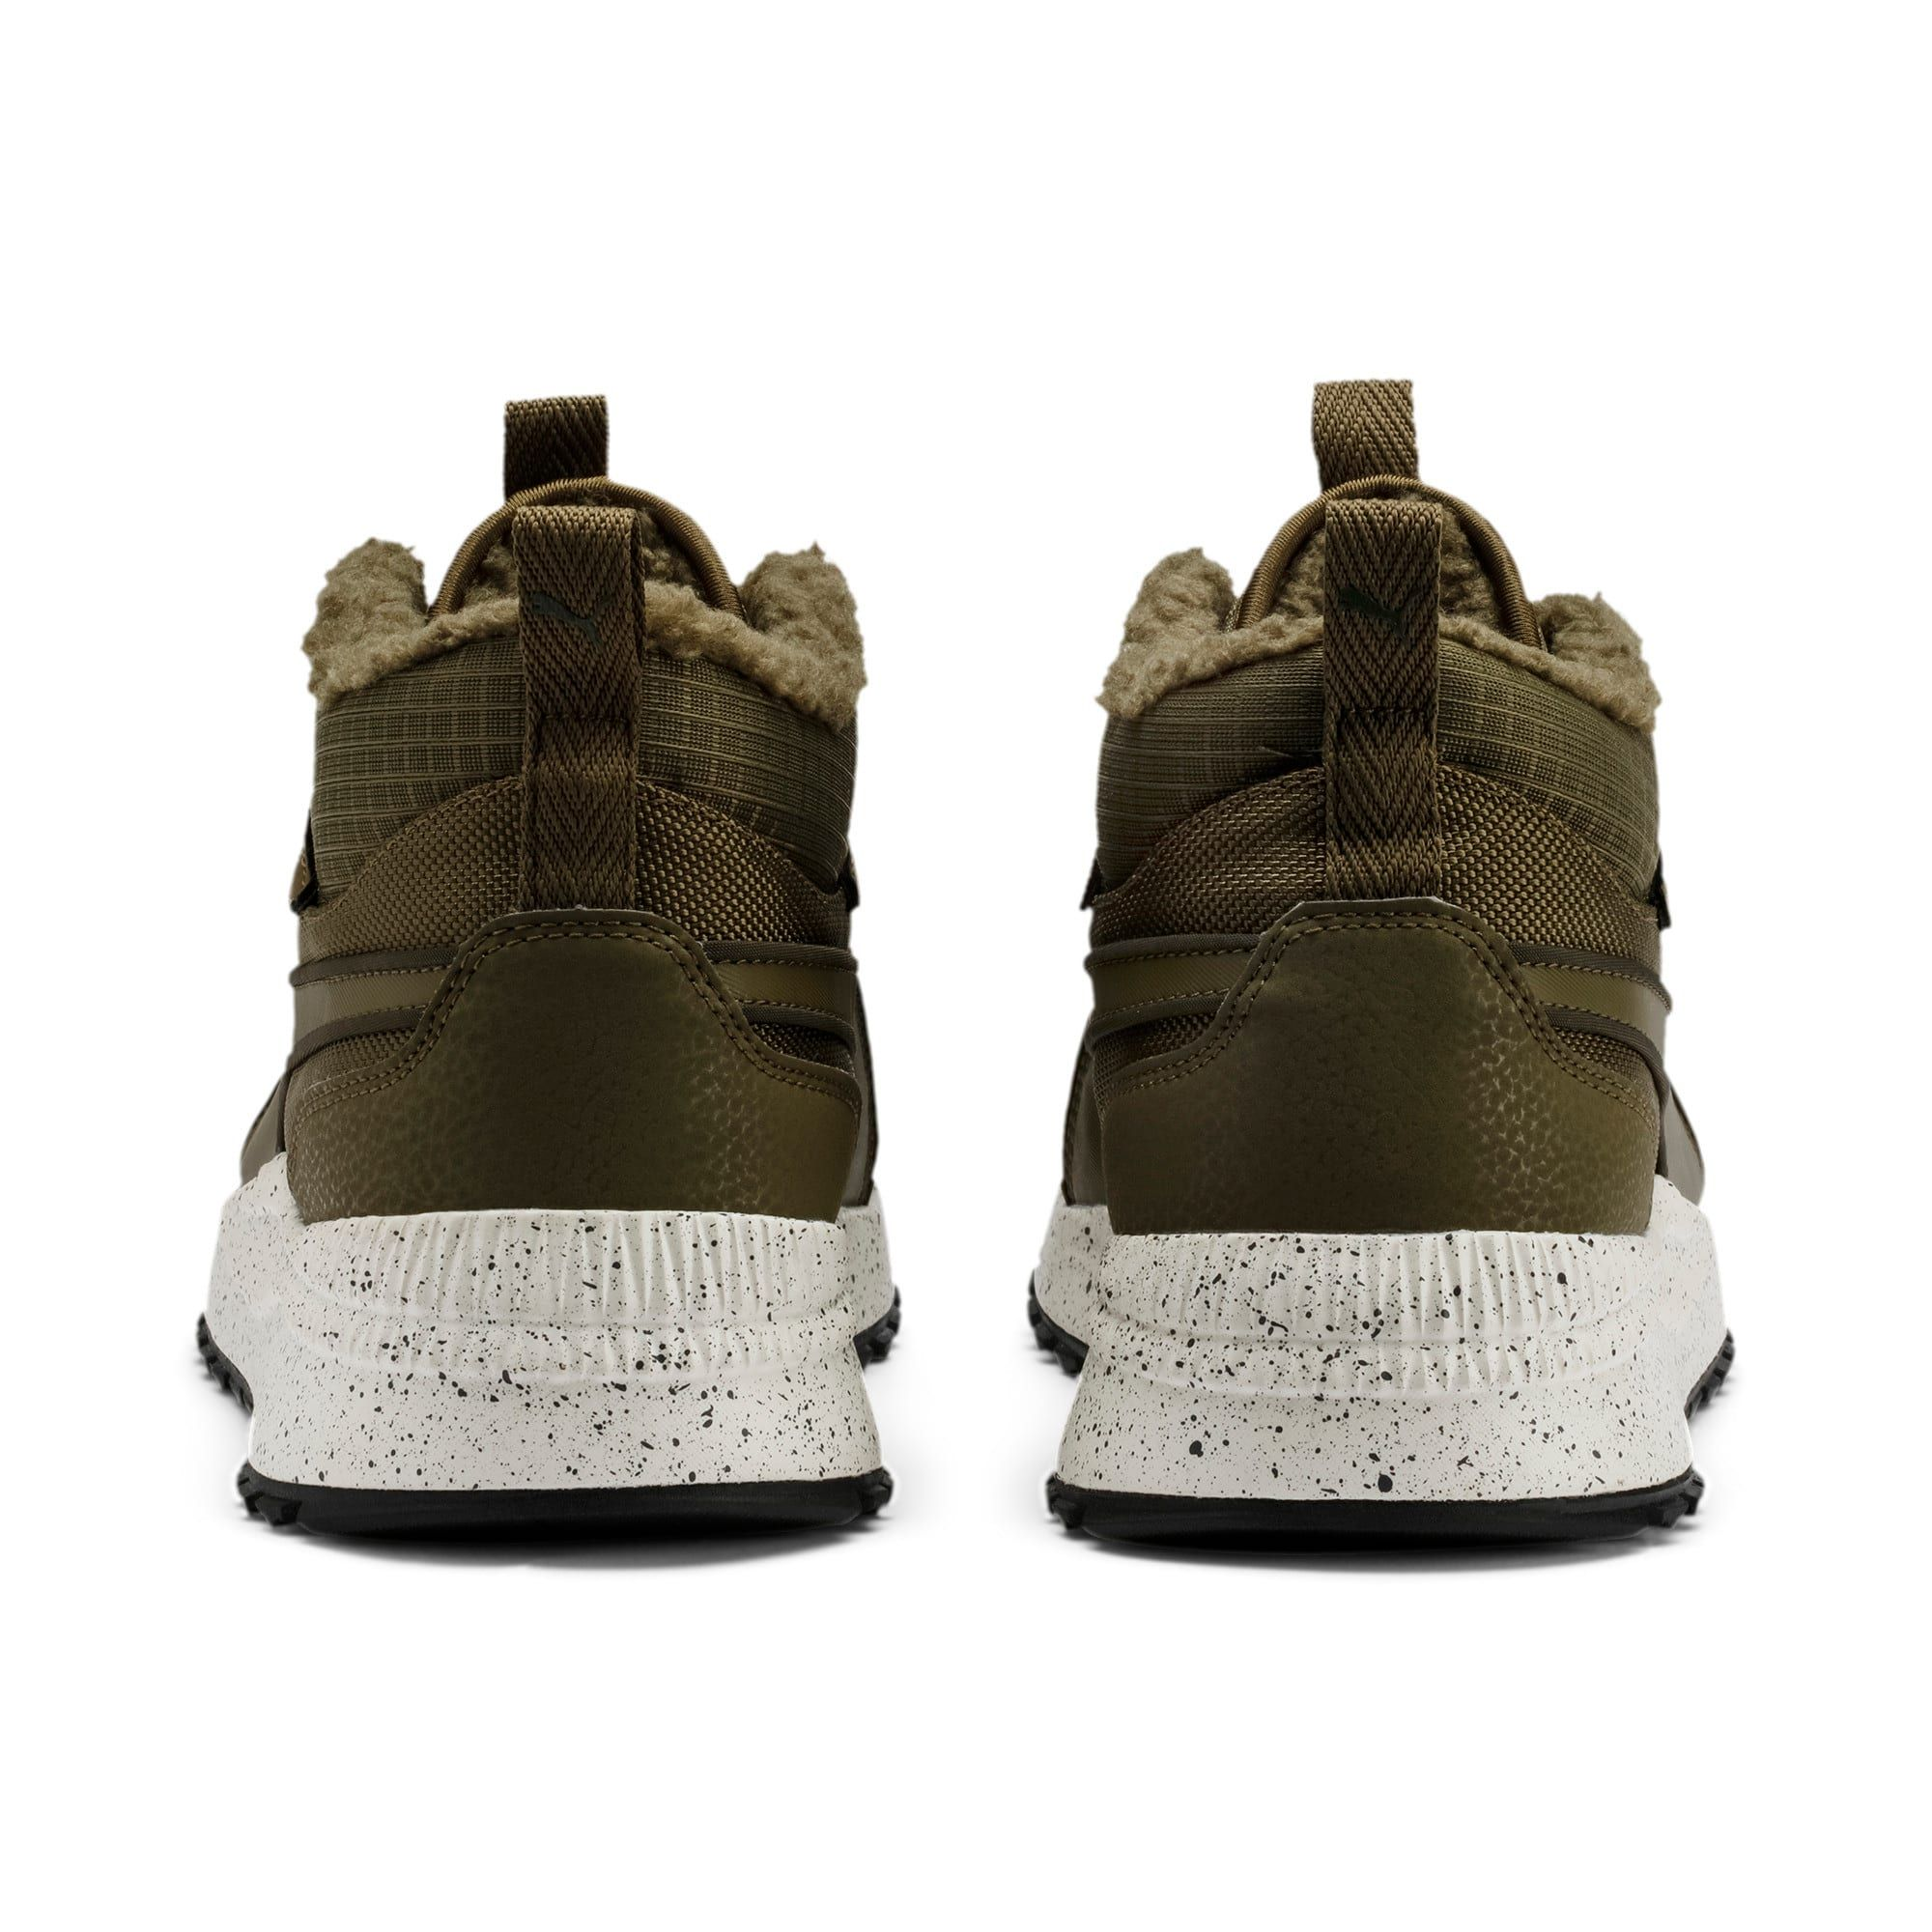 PUMA Pacer Next Trainers Winterised Boots in Burnt Olive